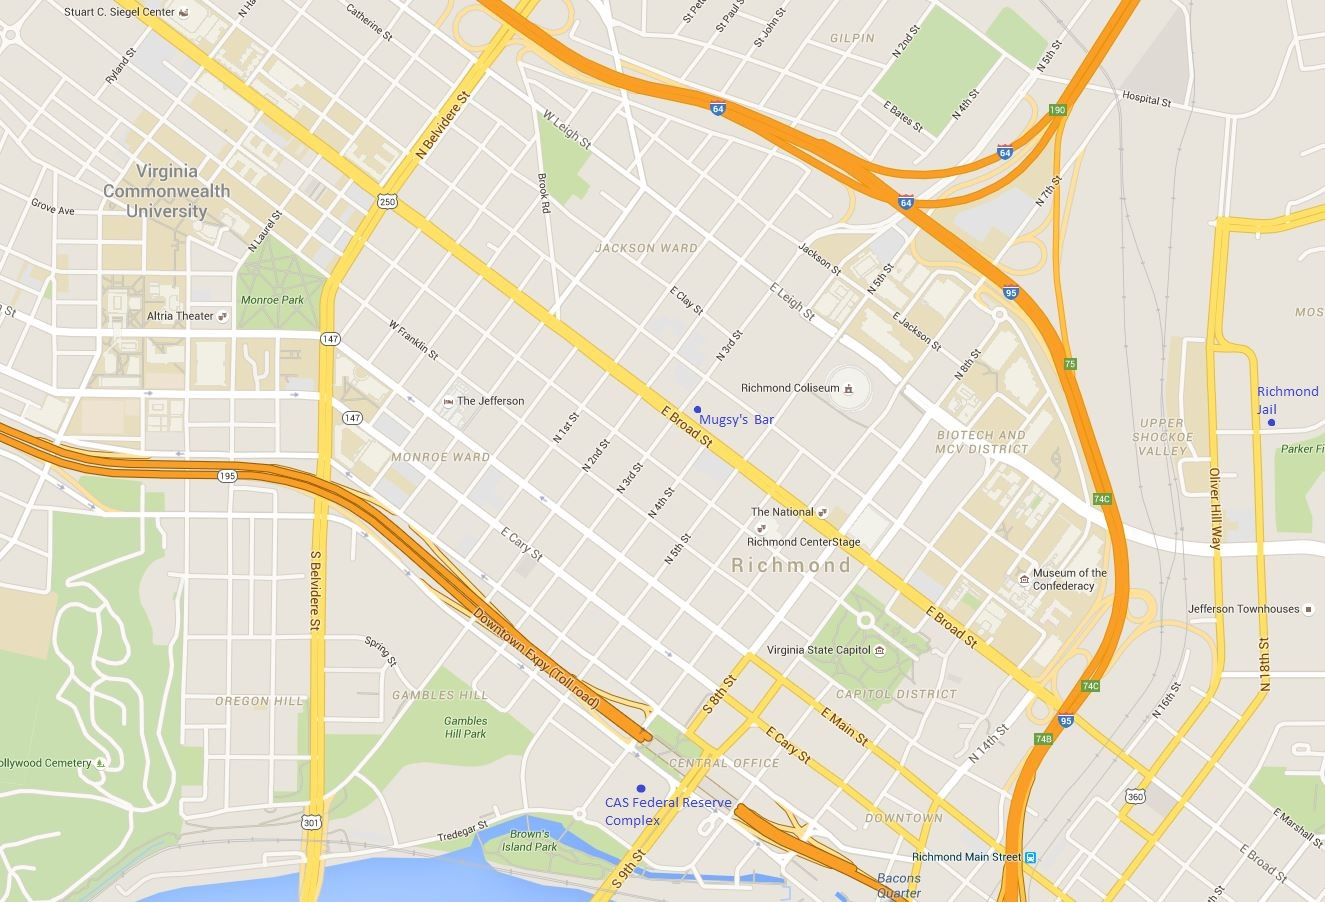 Richmond_Map_Downtown_v1_2015.11.06.jpg